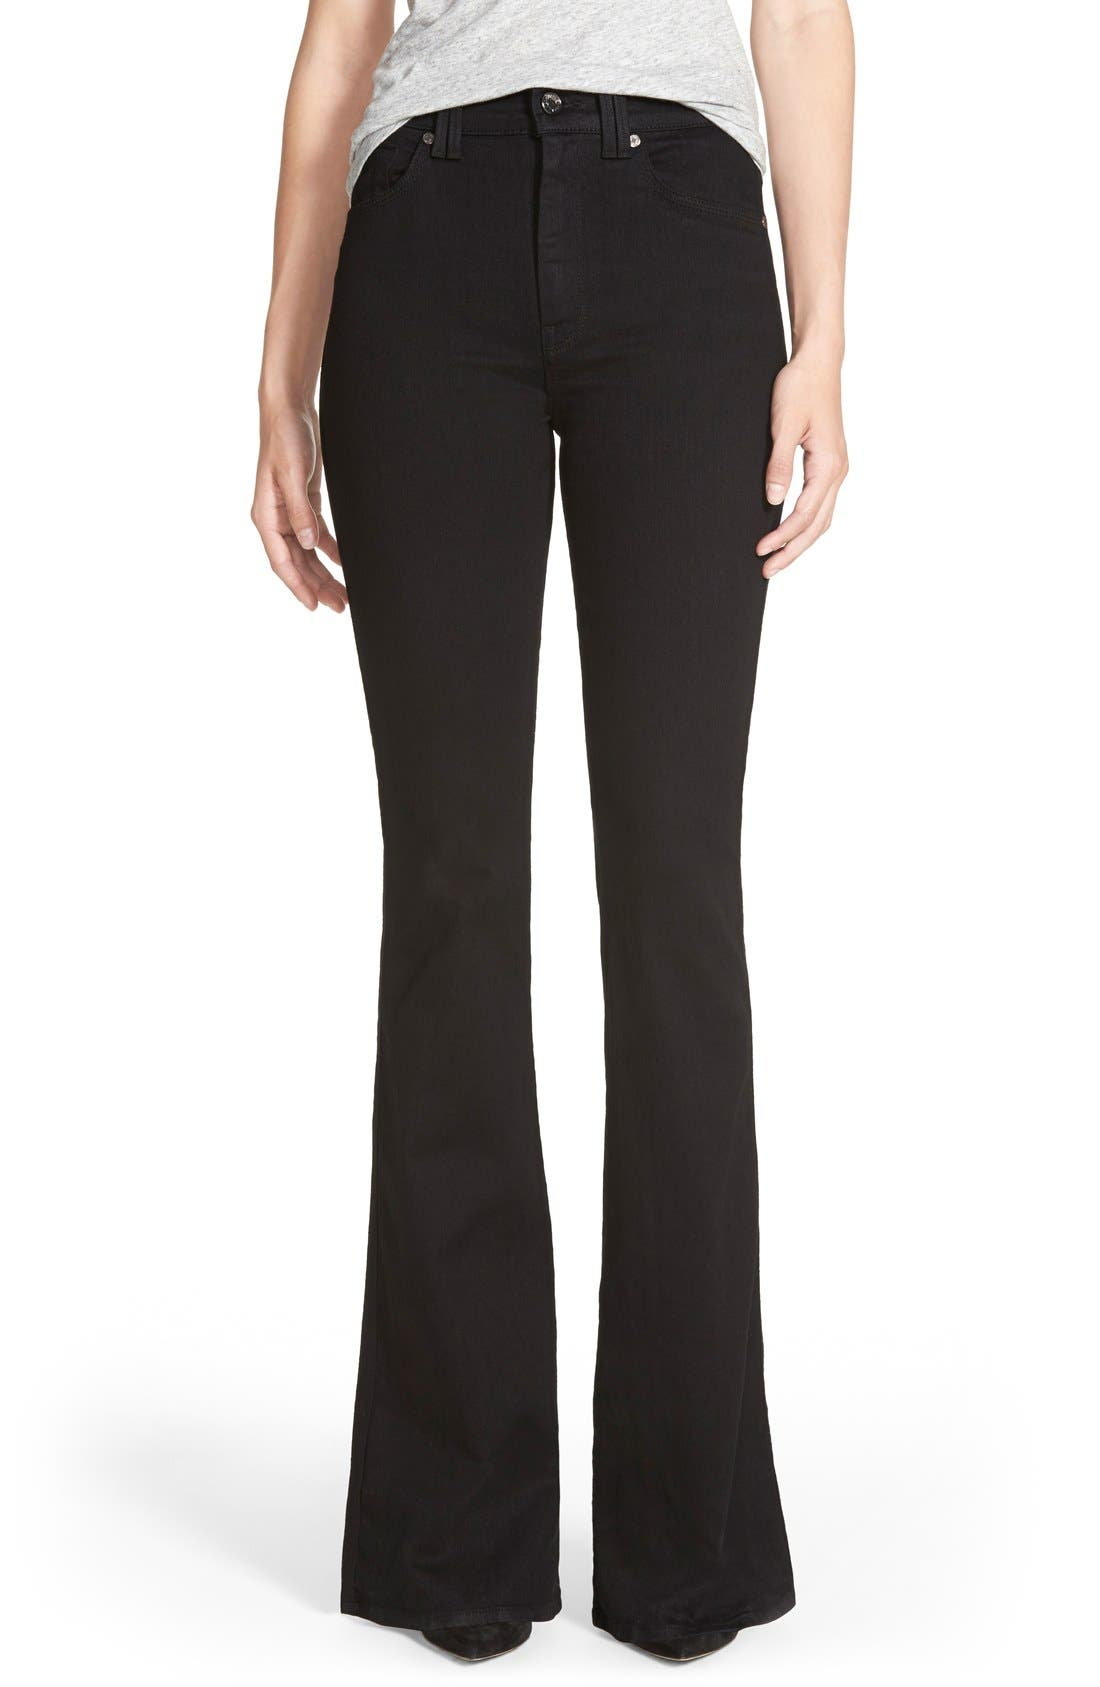 Main Image - 7 For All Mankind® High Rise Flare Jeans (Overdyed Black)